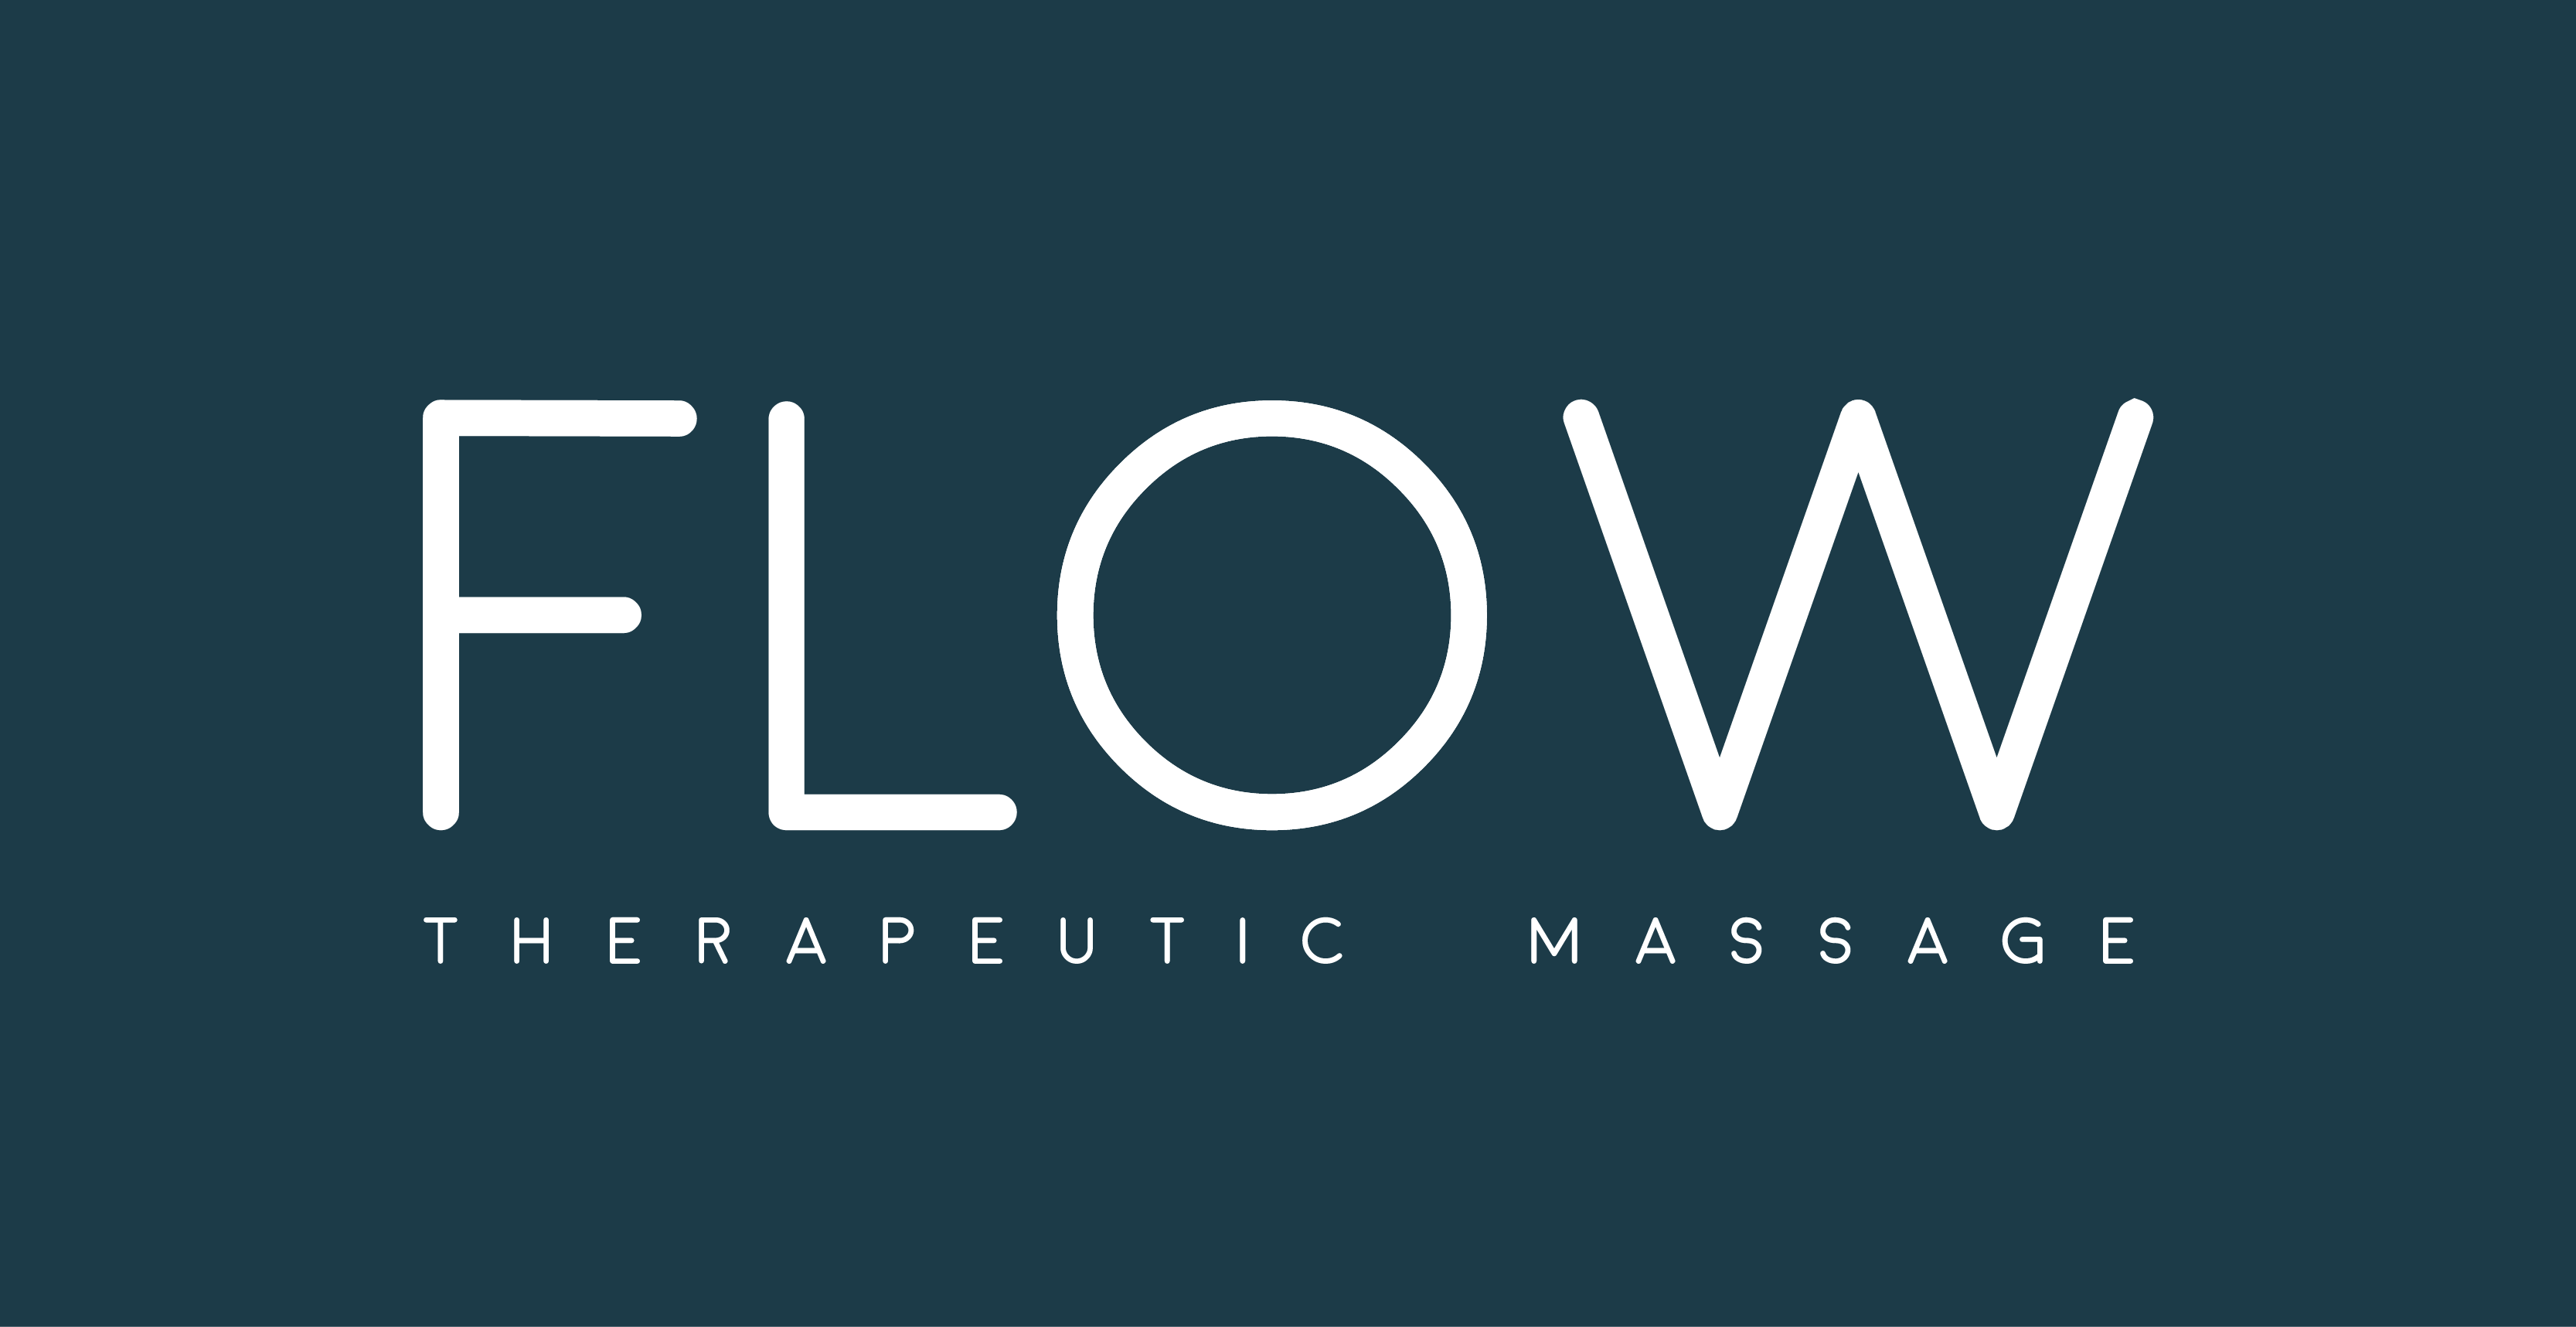 Flow Therapeutic Massage